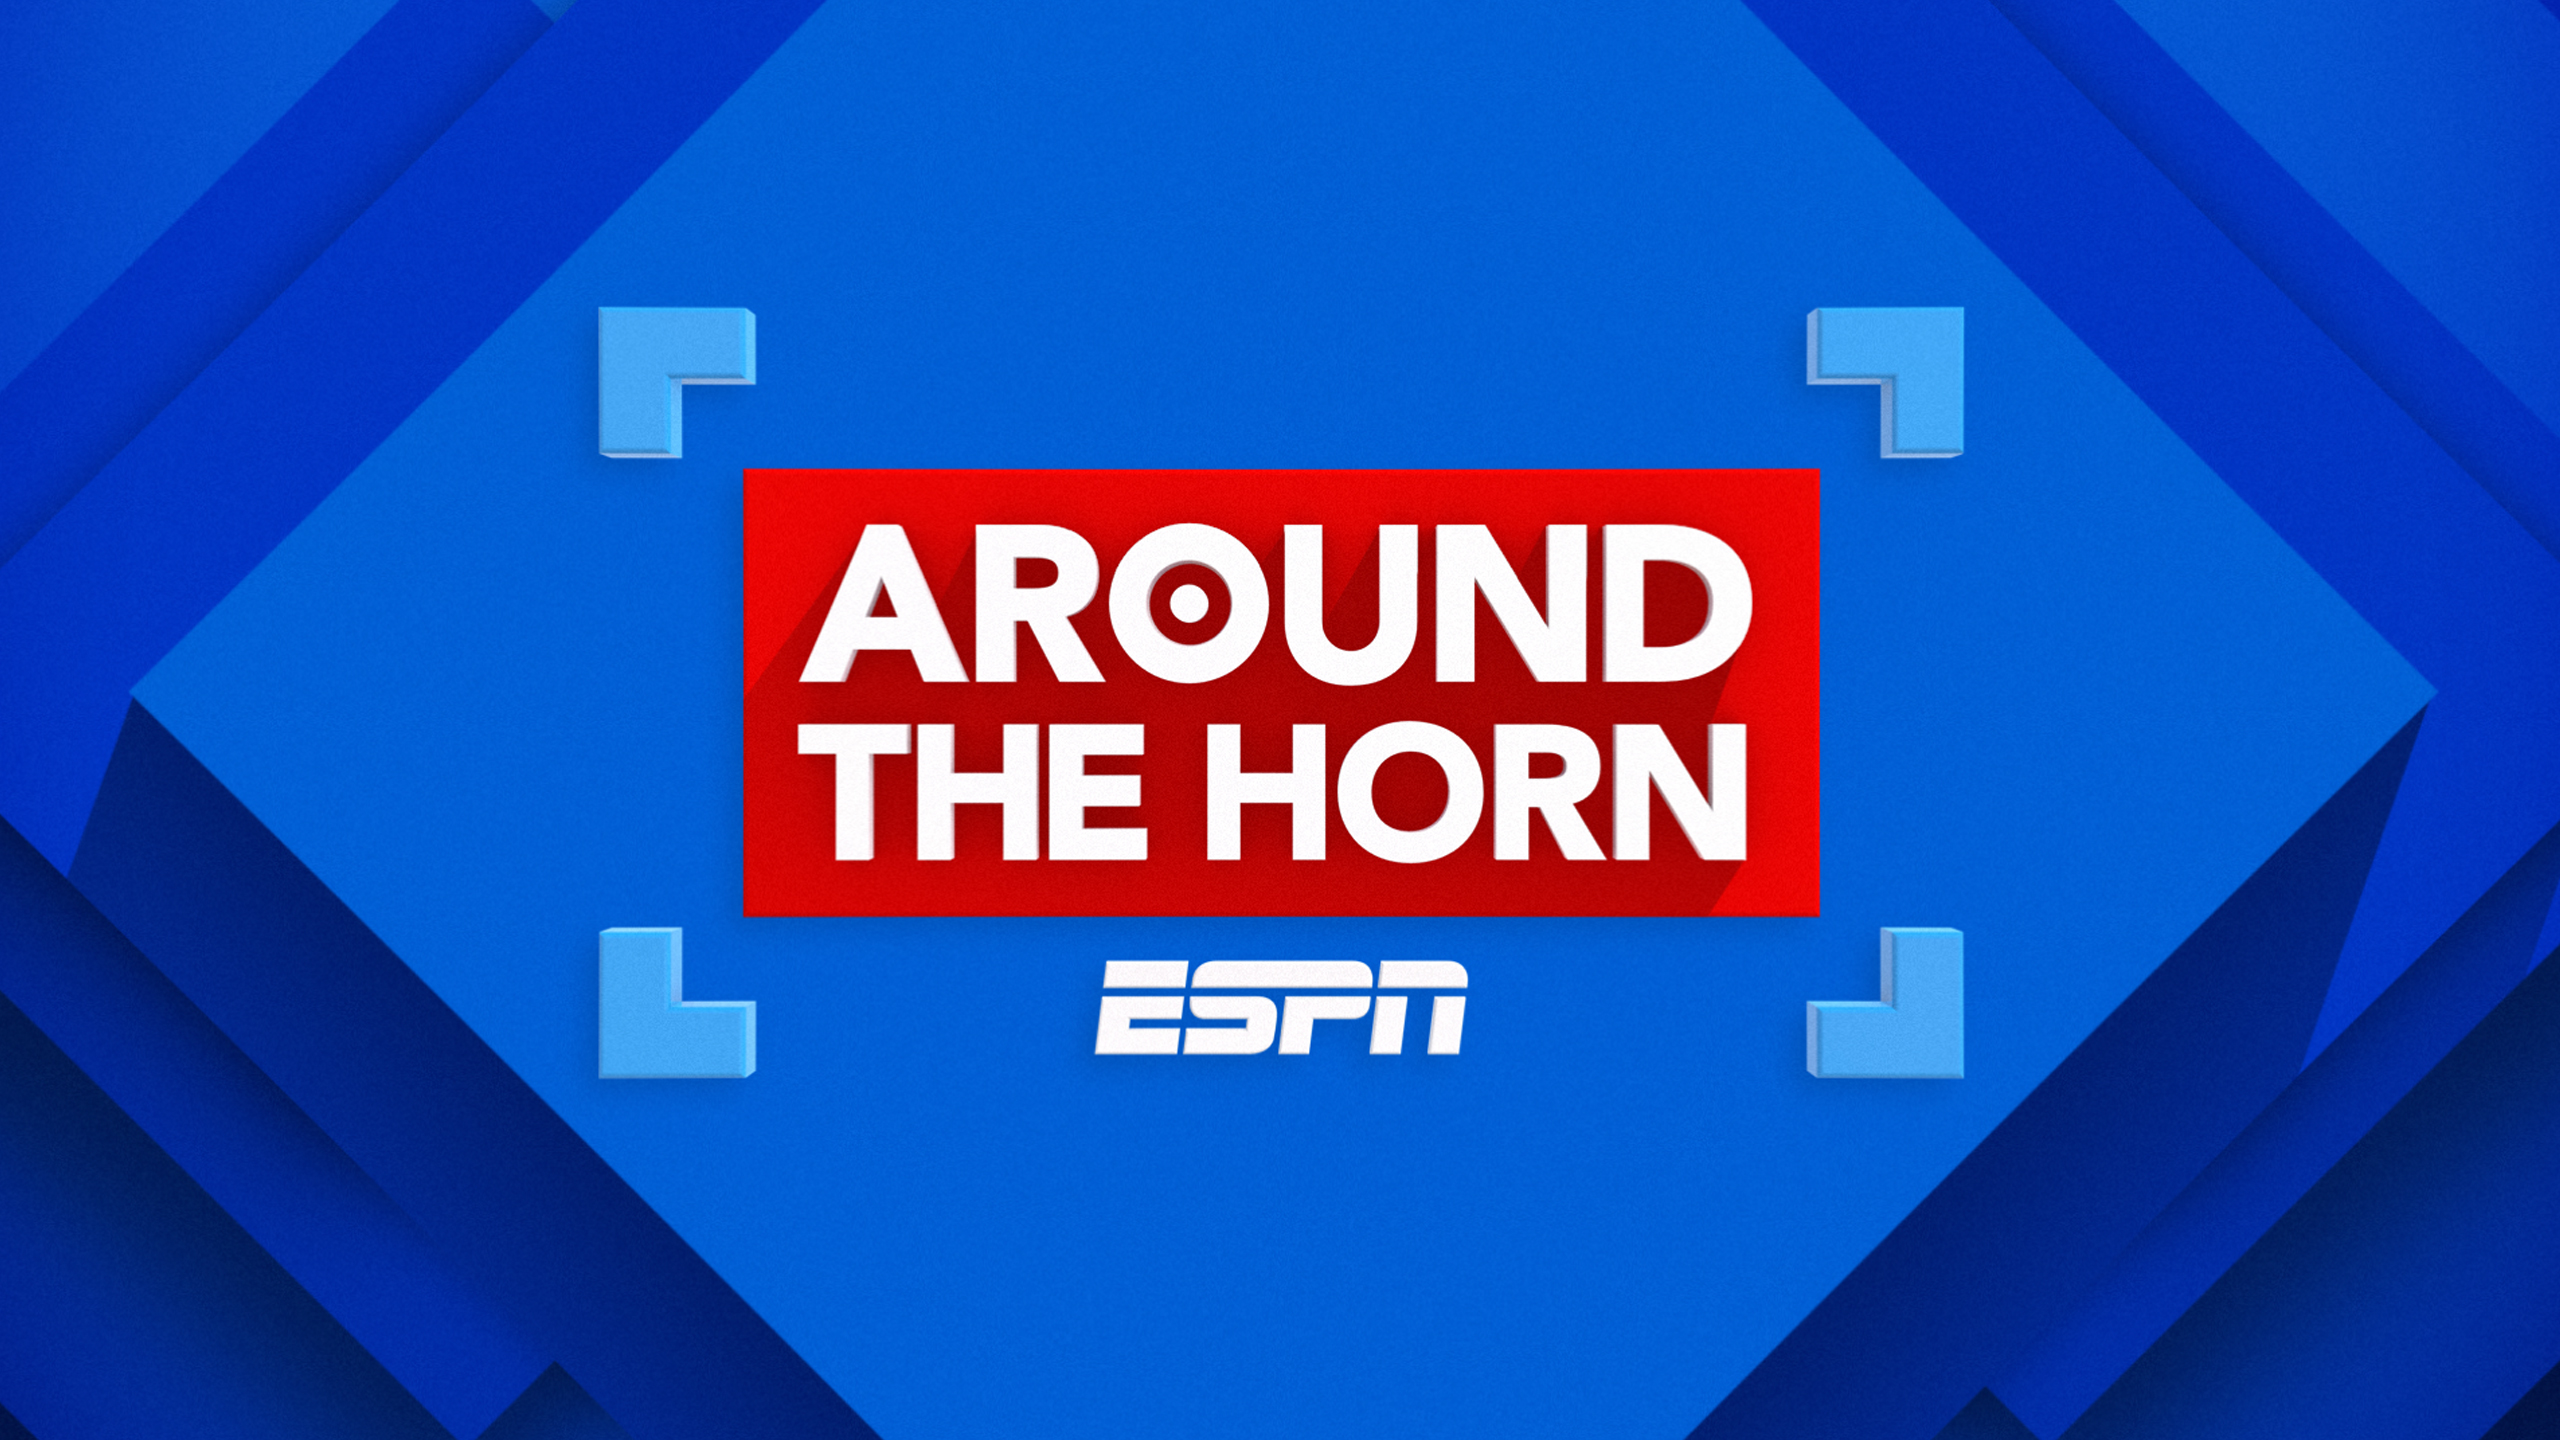 Mon, 10/22 - Around The Horn